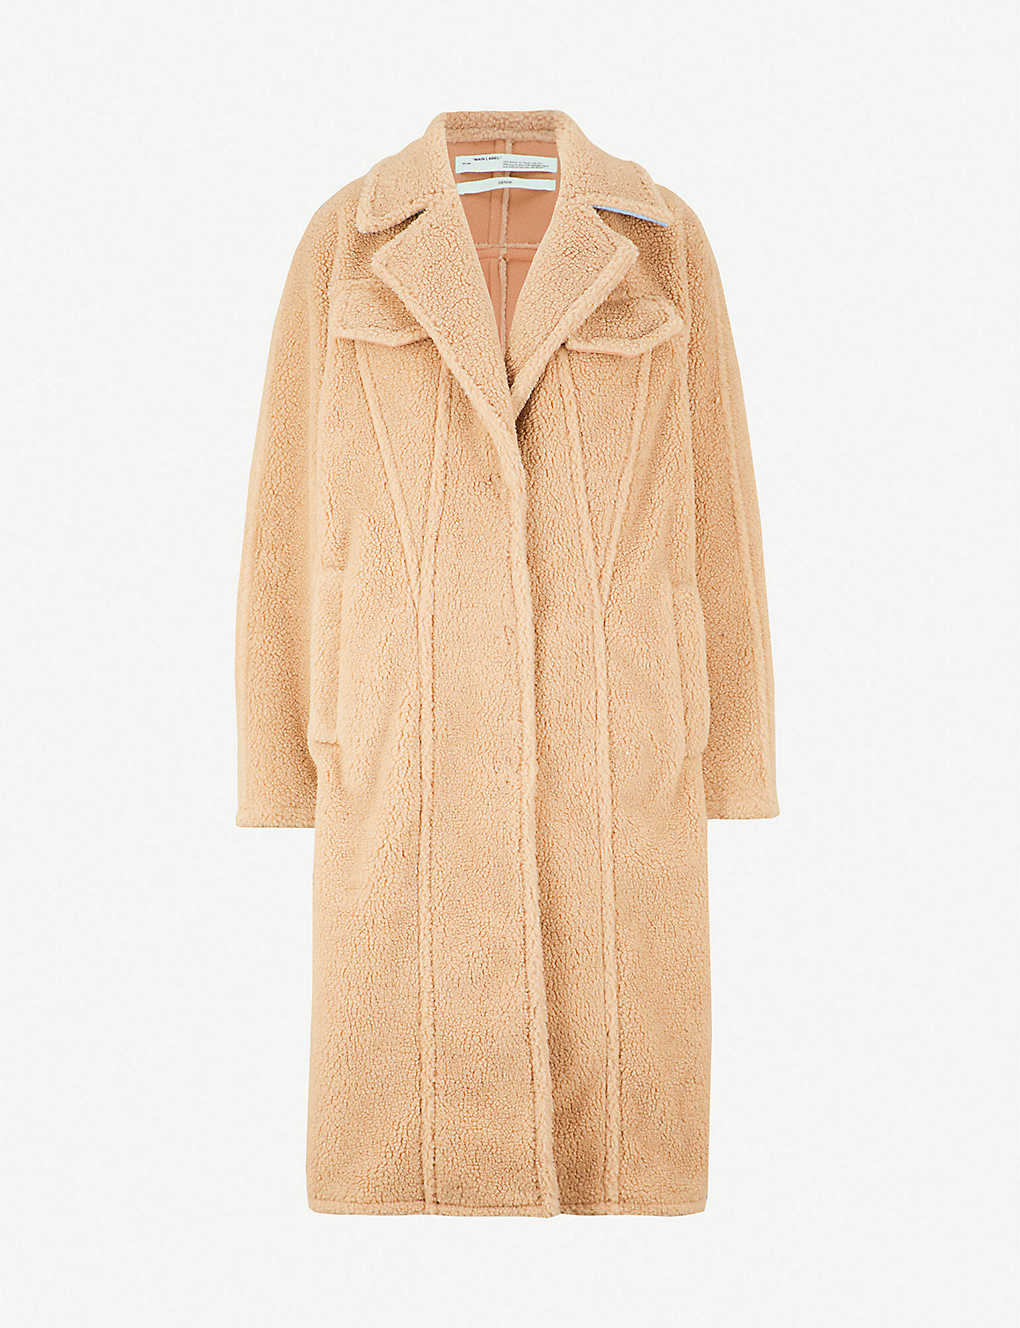 c1049b5751a4 OFF-WHITE C O VIRGIL ABLOH - Textured faux-fur teddy coat ...